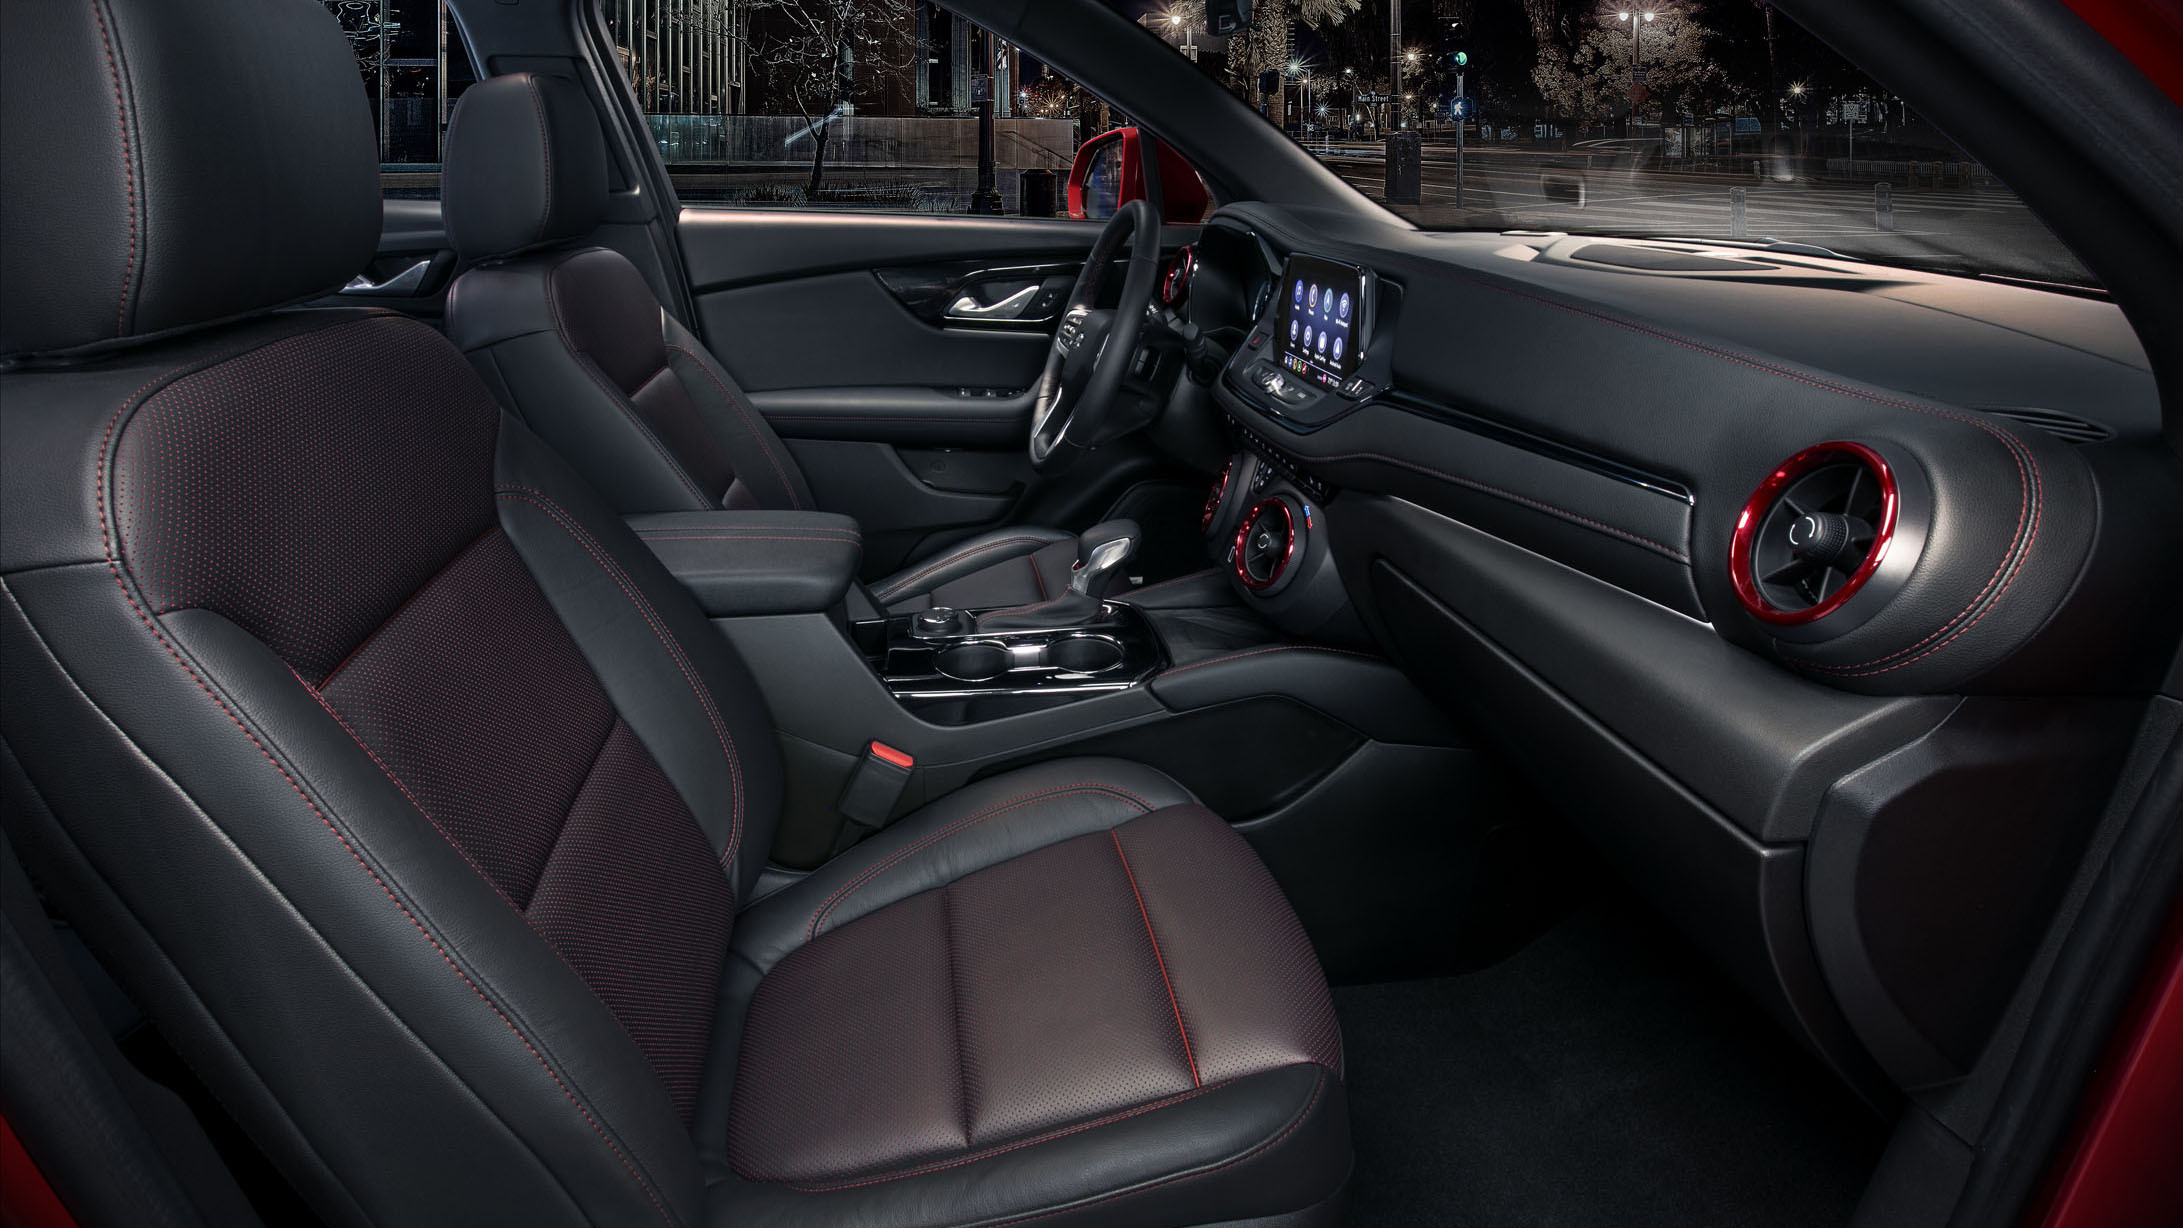 The 2019 Chevrolet Blazer RS interior features a driver-centric interior along with red accents and trim.